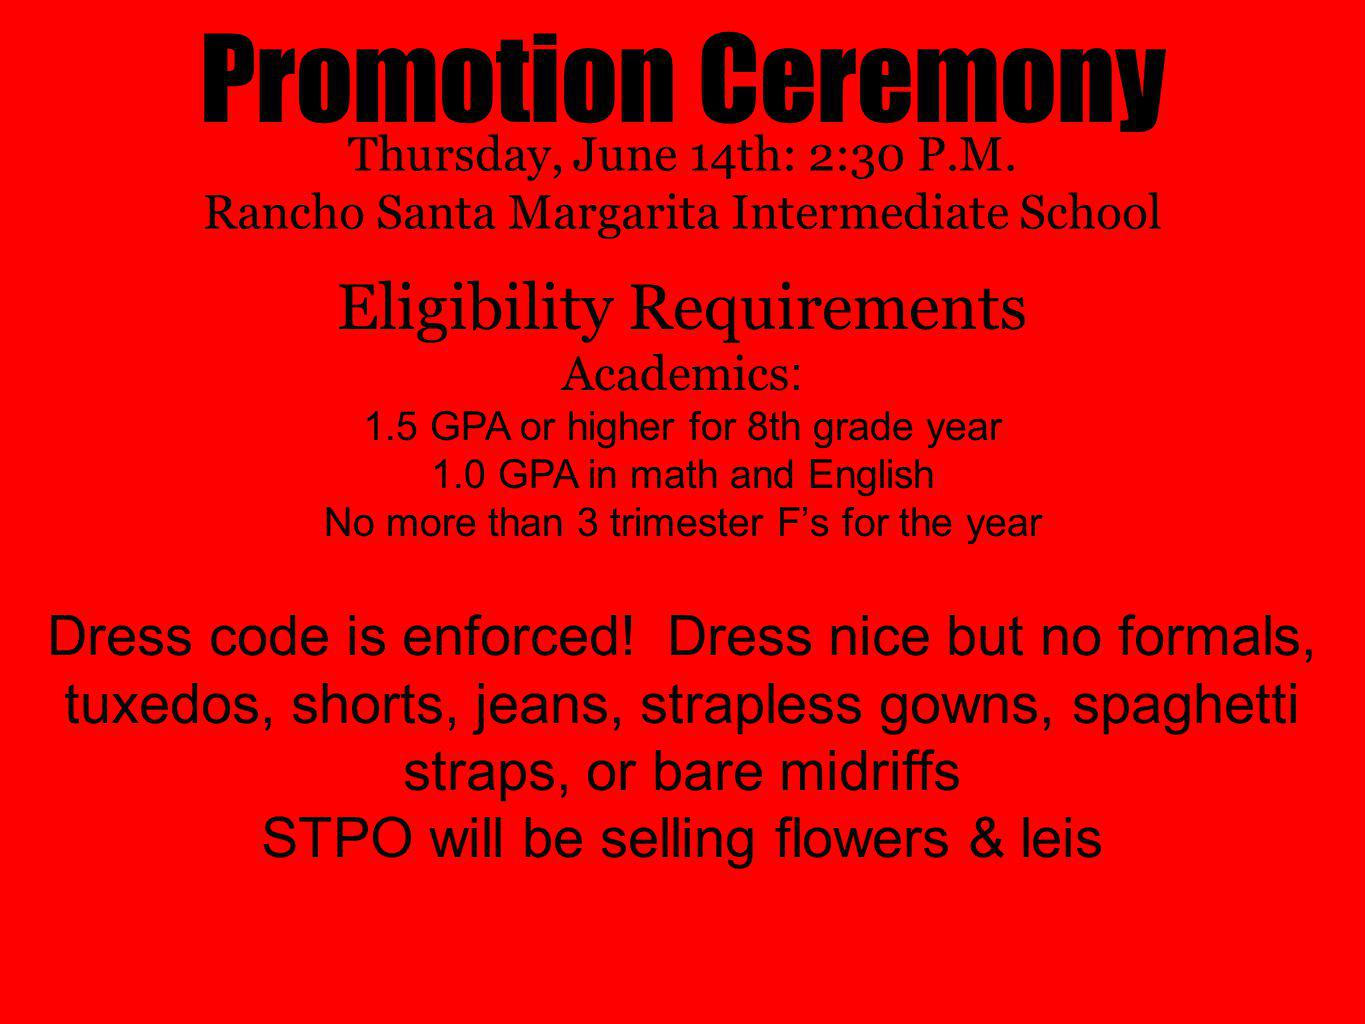 Promotion Ceremony Eligibility Requirements Academics : 1.5 GPA or higher for 8th grade year 1.0 GPA in math and English No more than 3 trimester Fs f